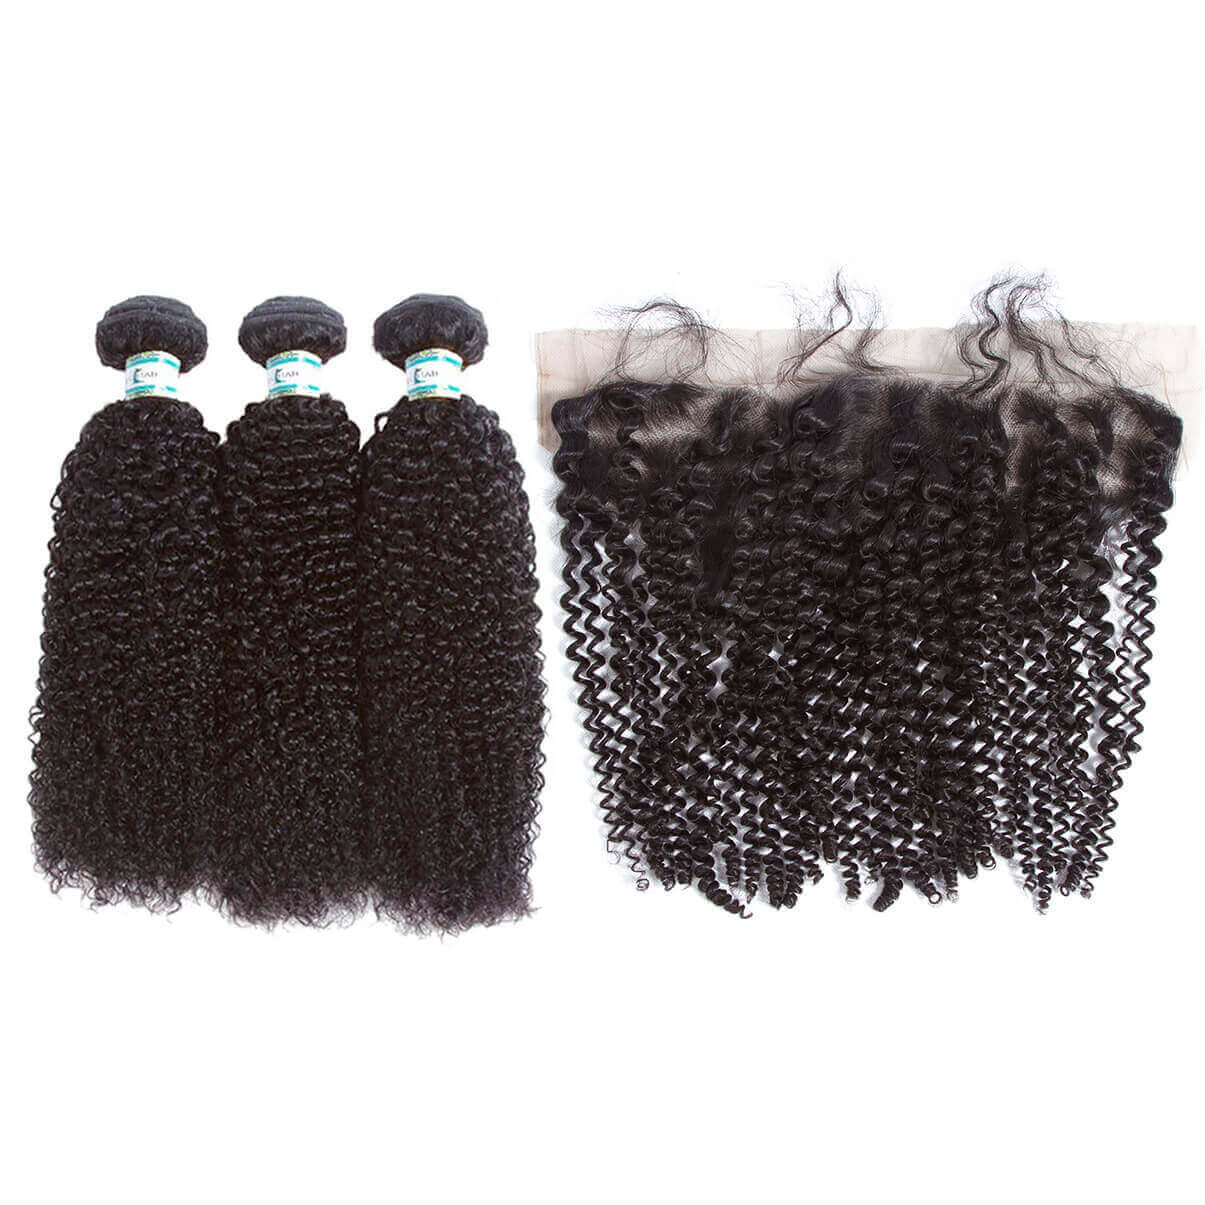 Lakihair 8A Kinky Curly 3 Bundles With Frontal Closure 13x4 Brazilian Virgin Human Hair Bundles